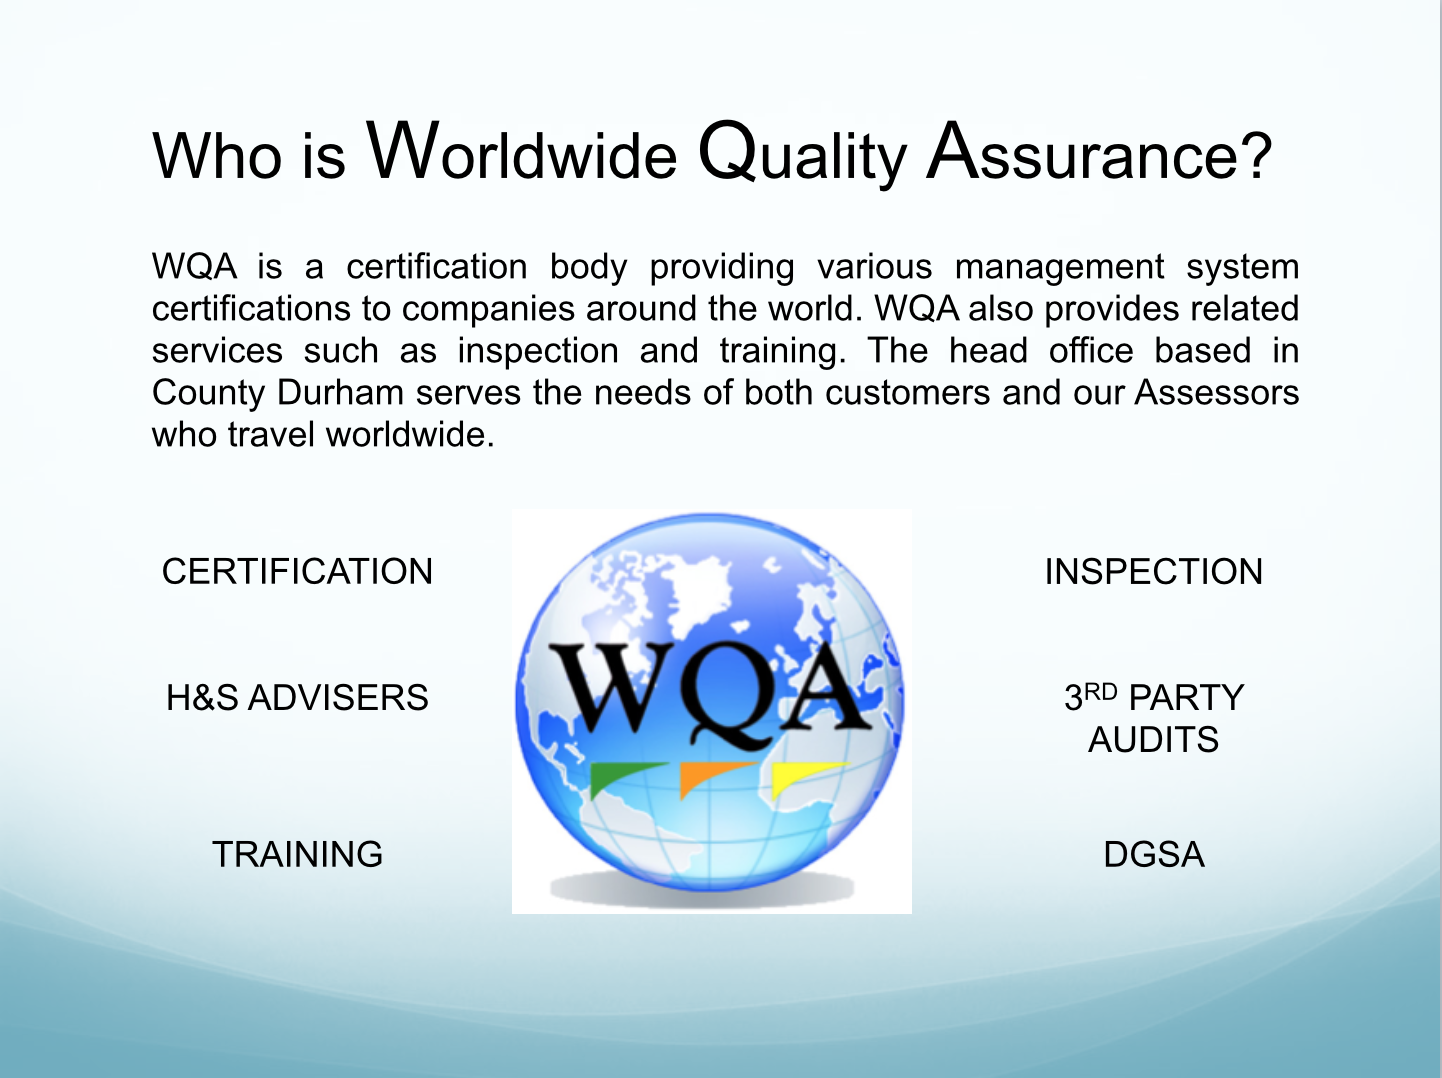 Who is Worldwide Quality Assurance